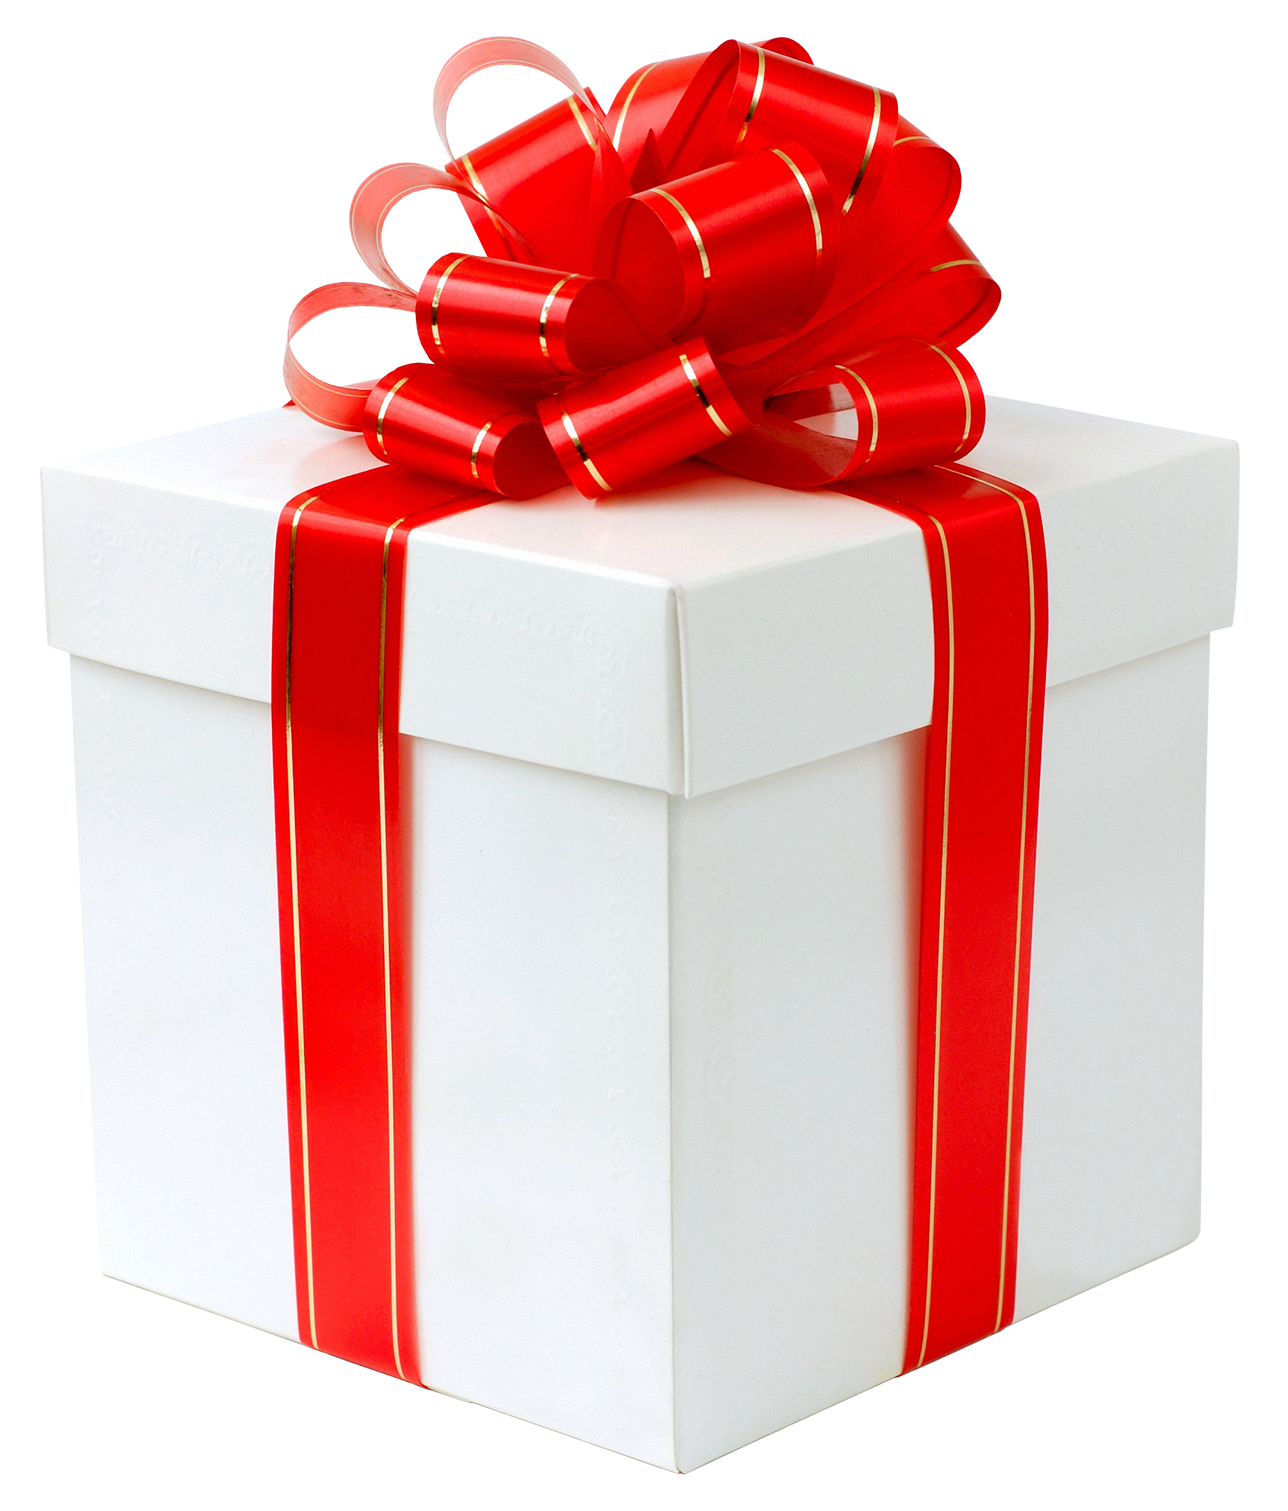 svg freeuse stock Gift png transparent images. Clipart christmas presents